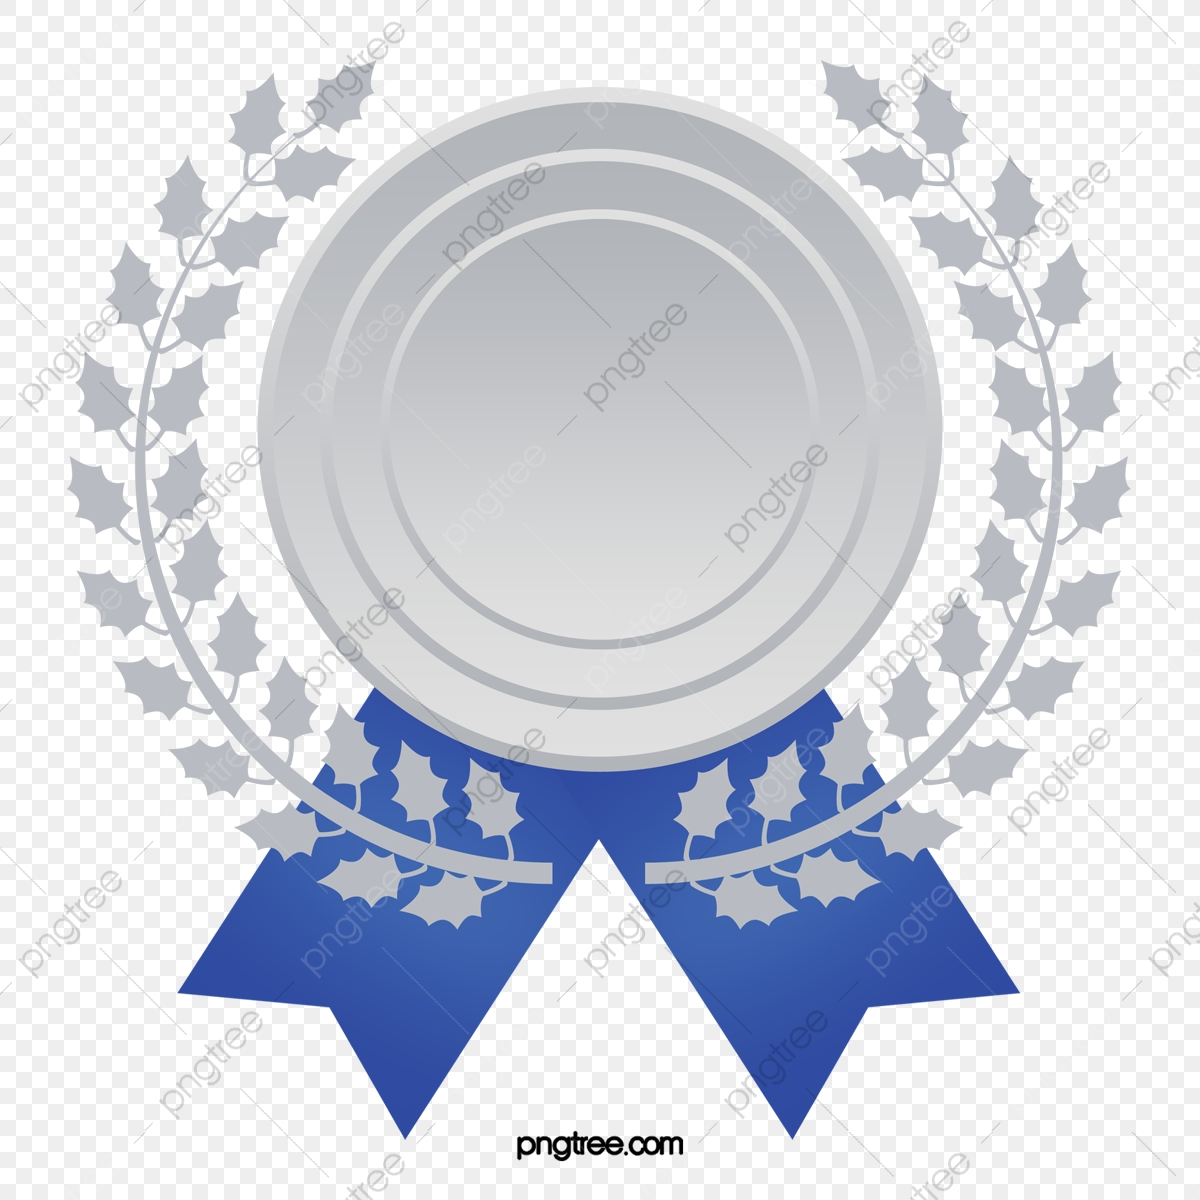 Medal clipart blue. Medals silver png